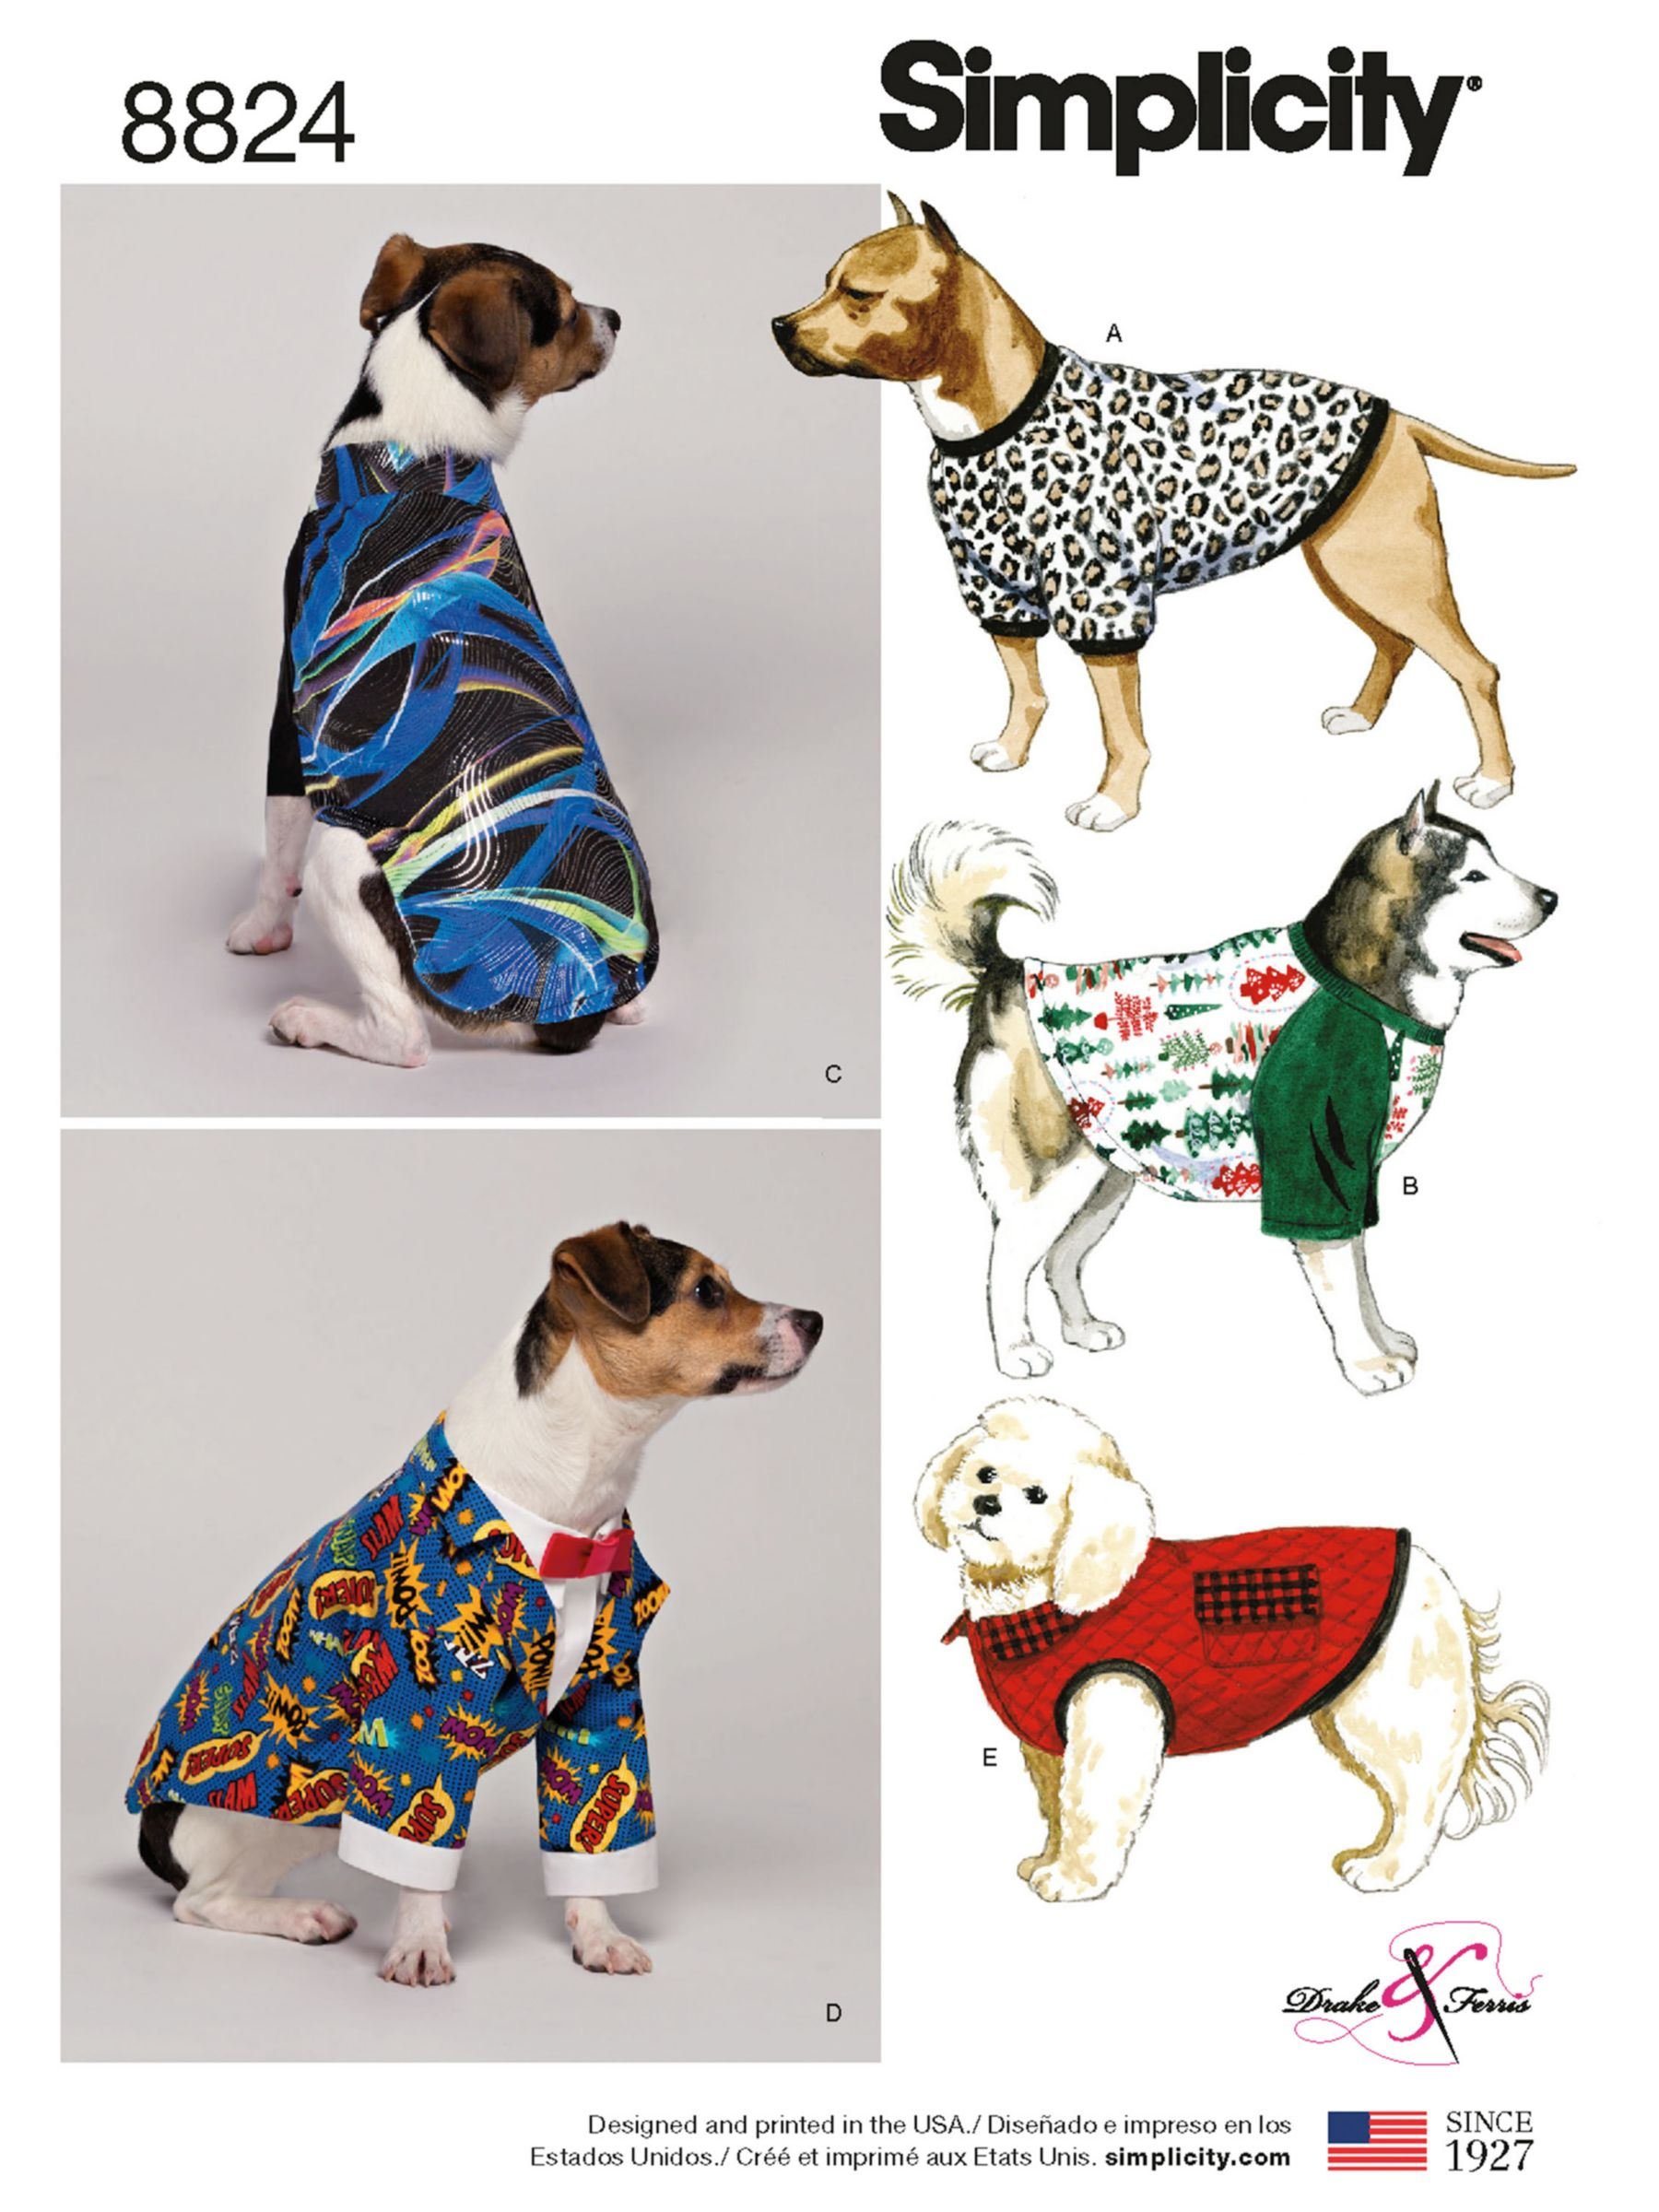 Simplicity Simplicity Dog Coat Sewing Pattern, 8824